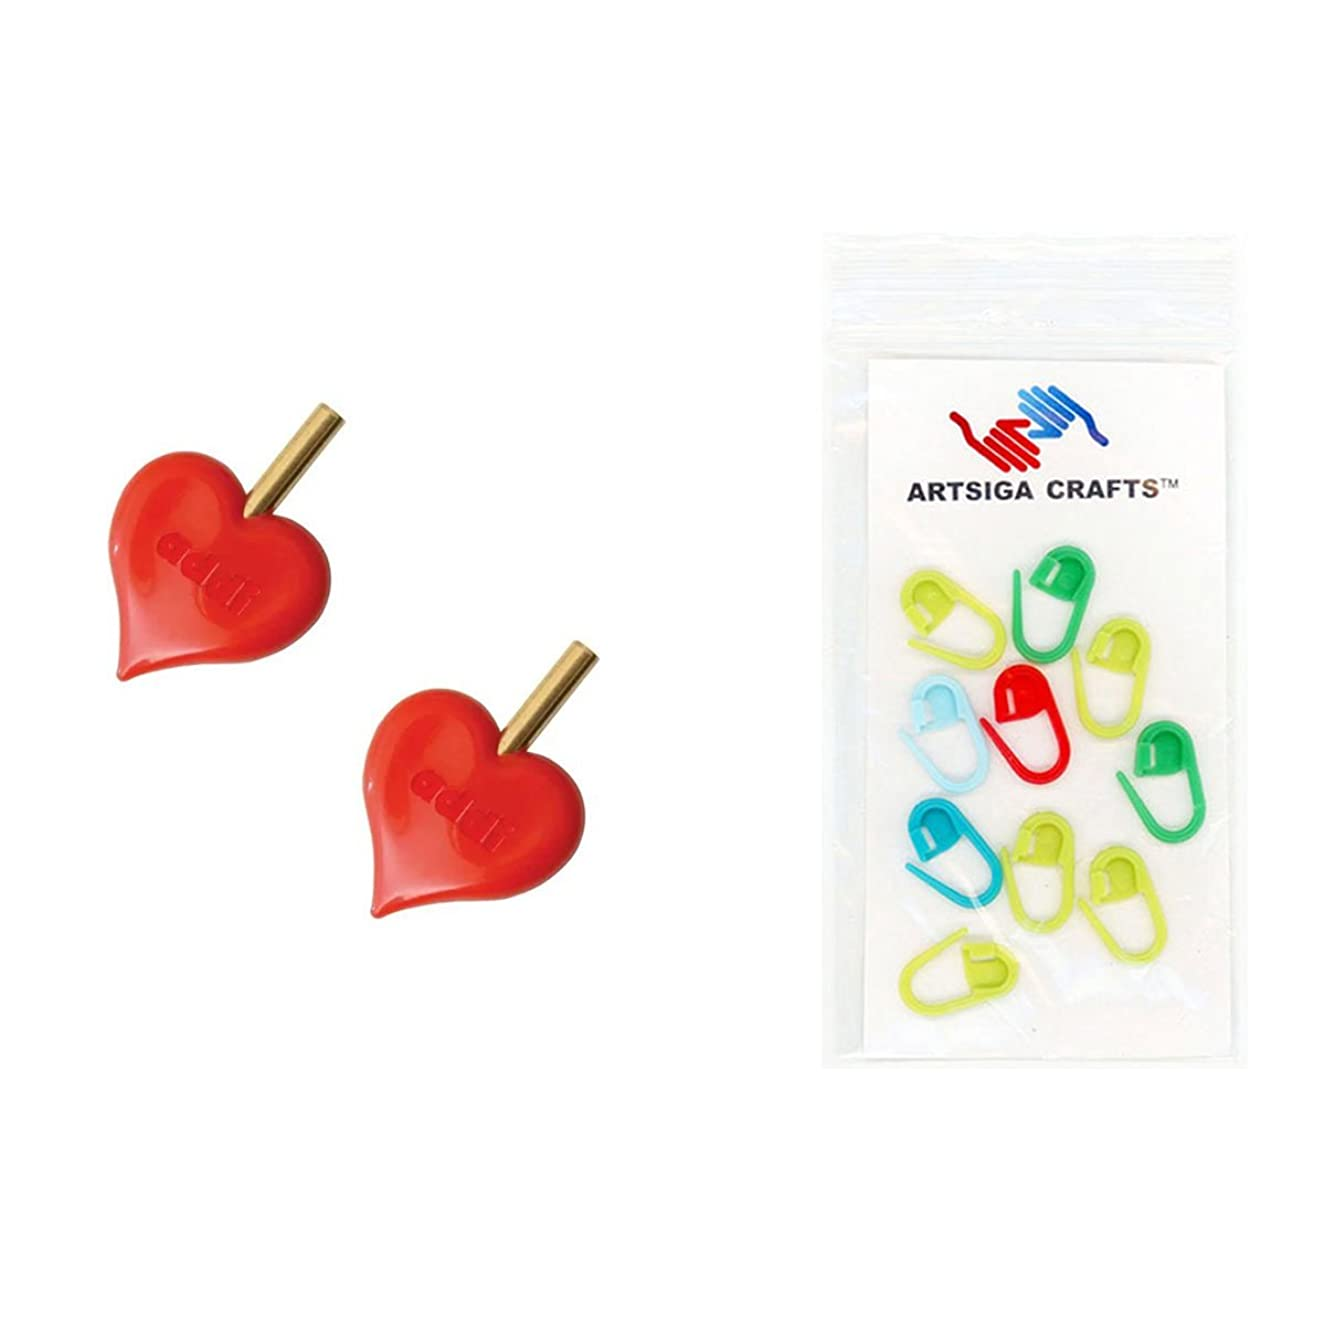 addi Knitting Needle Click Interchangeable Turbo HeartStopper End-Caps Bundle with 10 Artsiga Crafts Stitch Markers